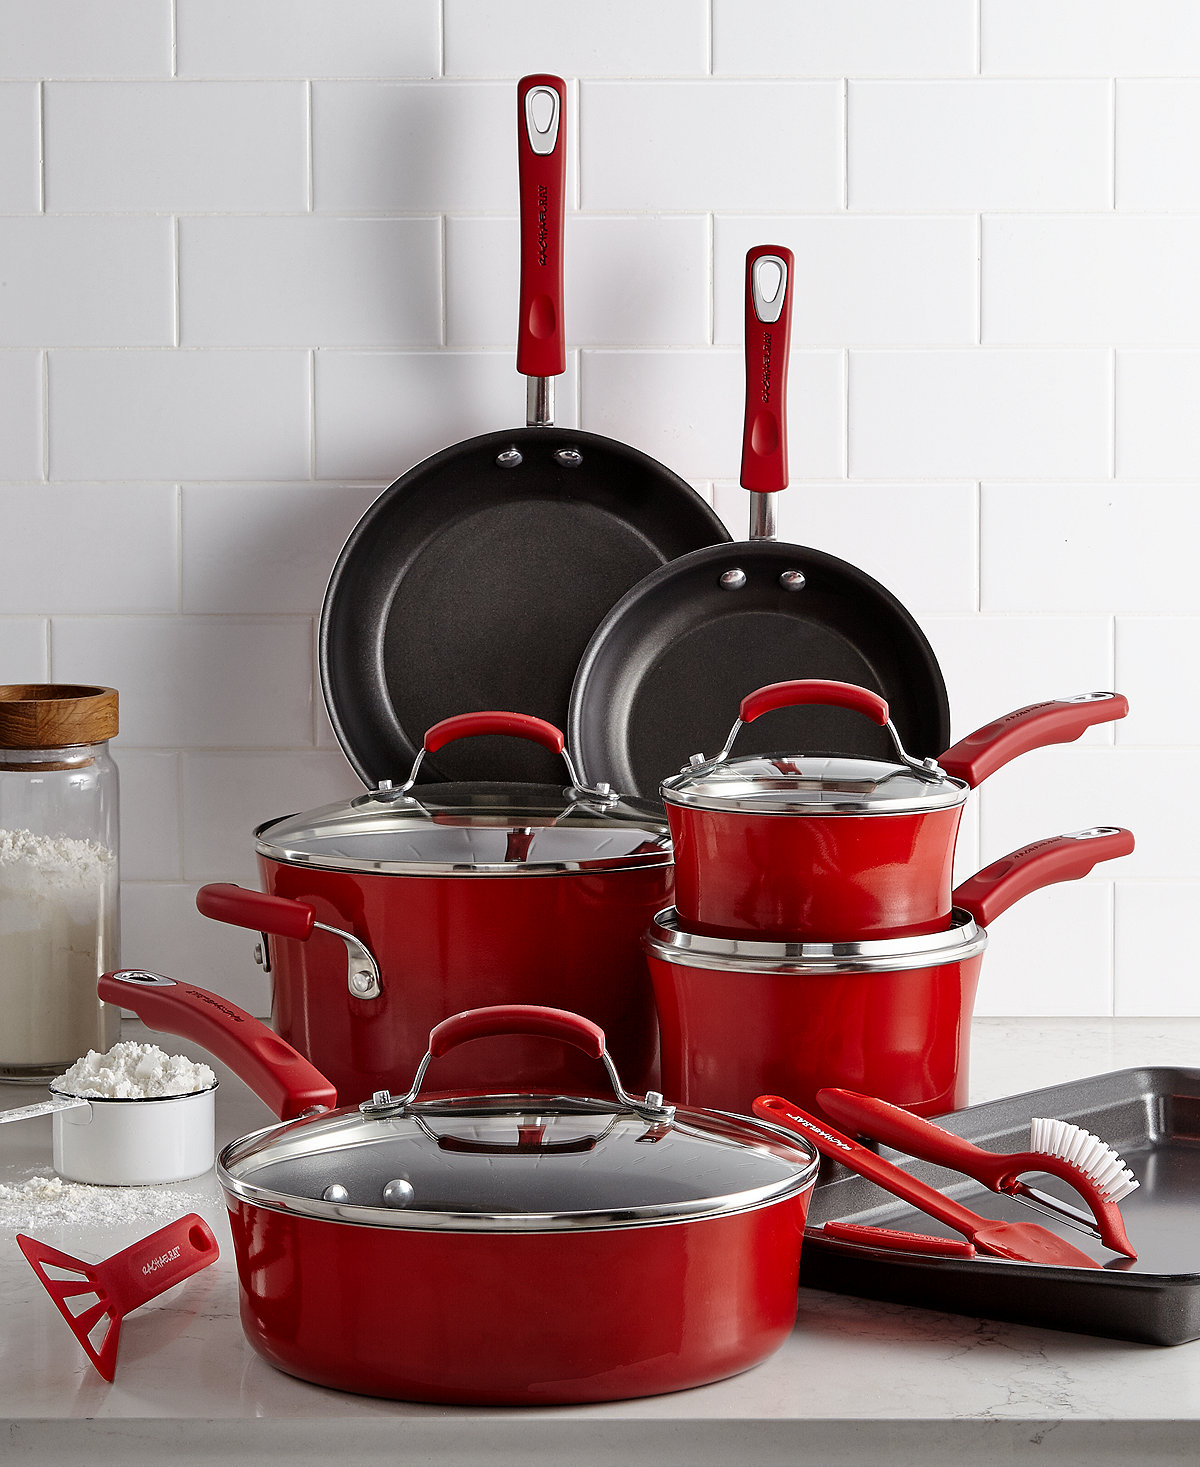 MACYS BLACK FRIDAY SPECIAL OFFICIALLY STARTS NOW! COOKWARE STARTING AT $9.99!